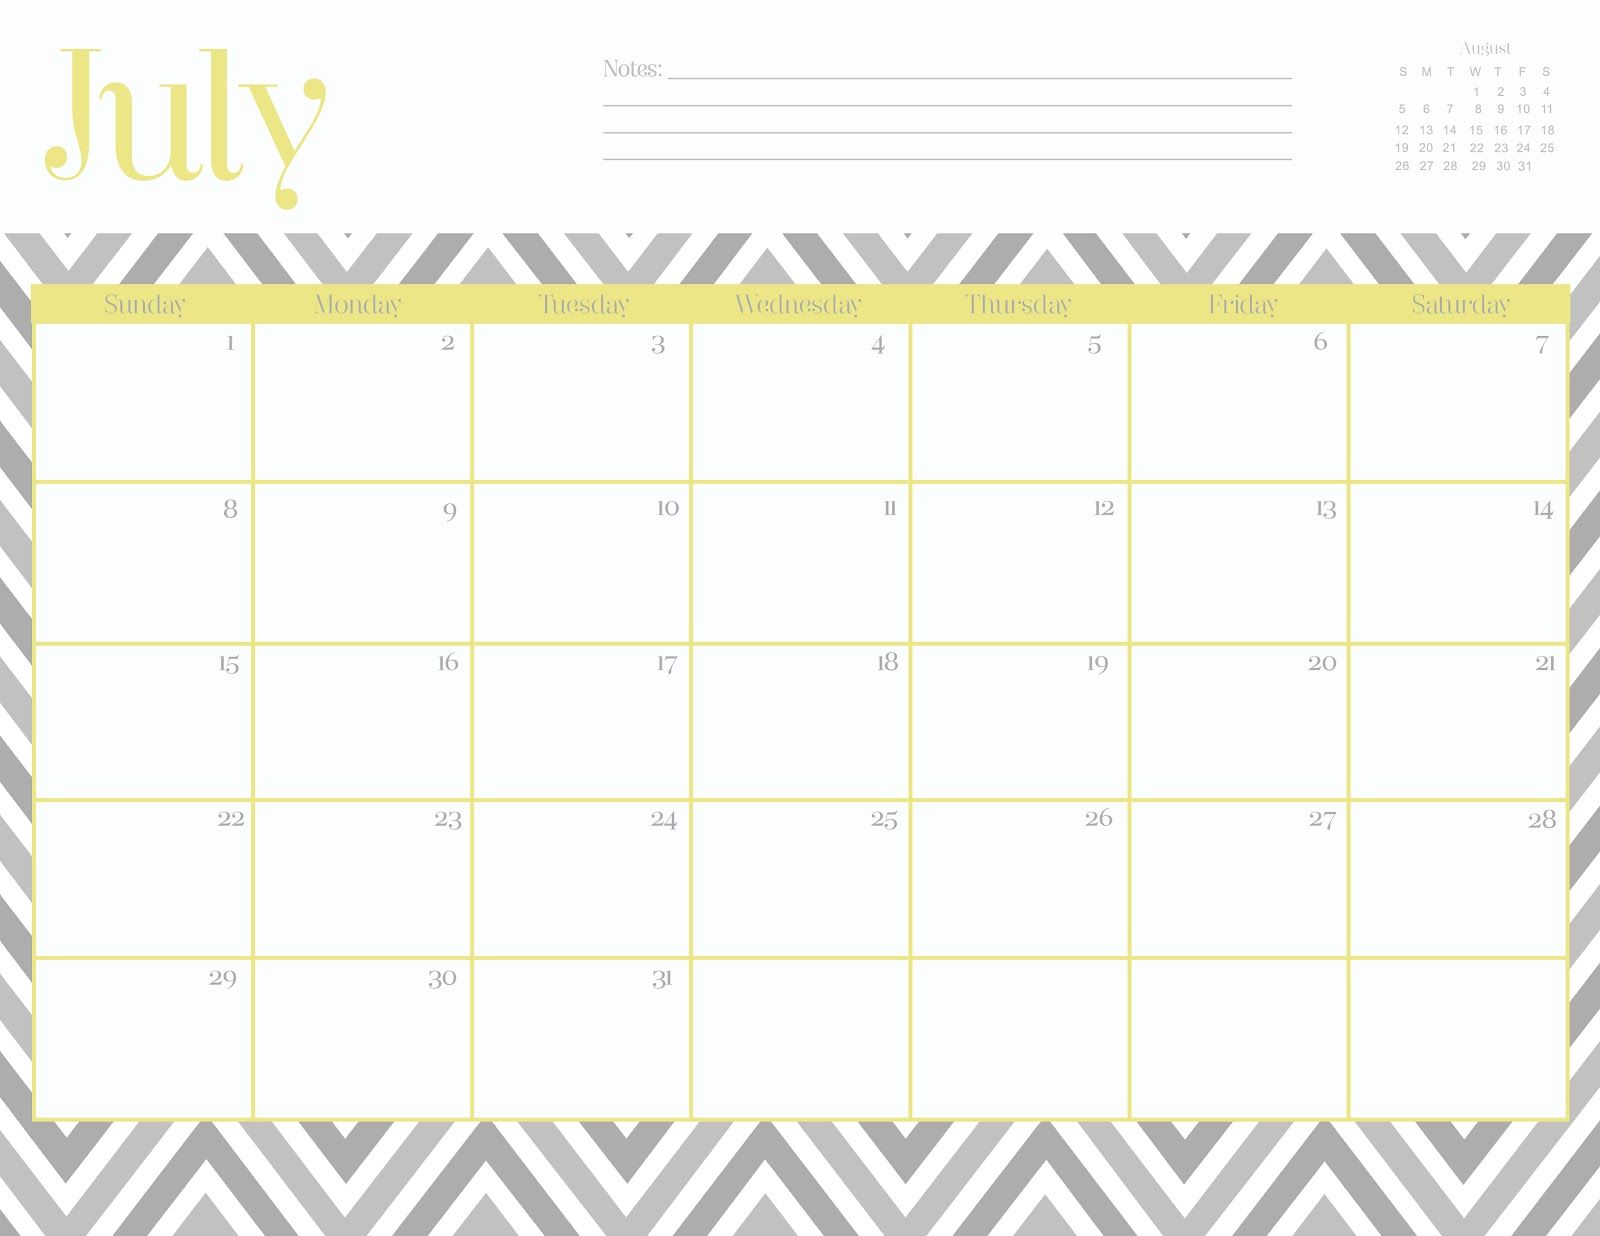 Free Monthly Calendar Templates This Site Has Lots Of Super Cute Printables Including